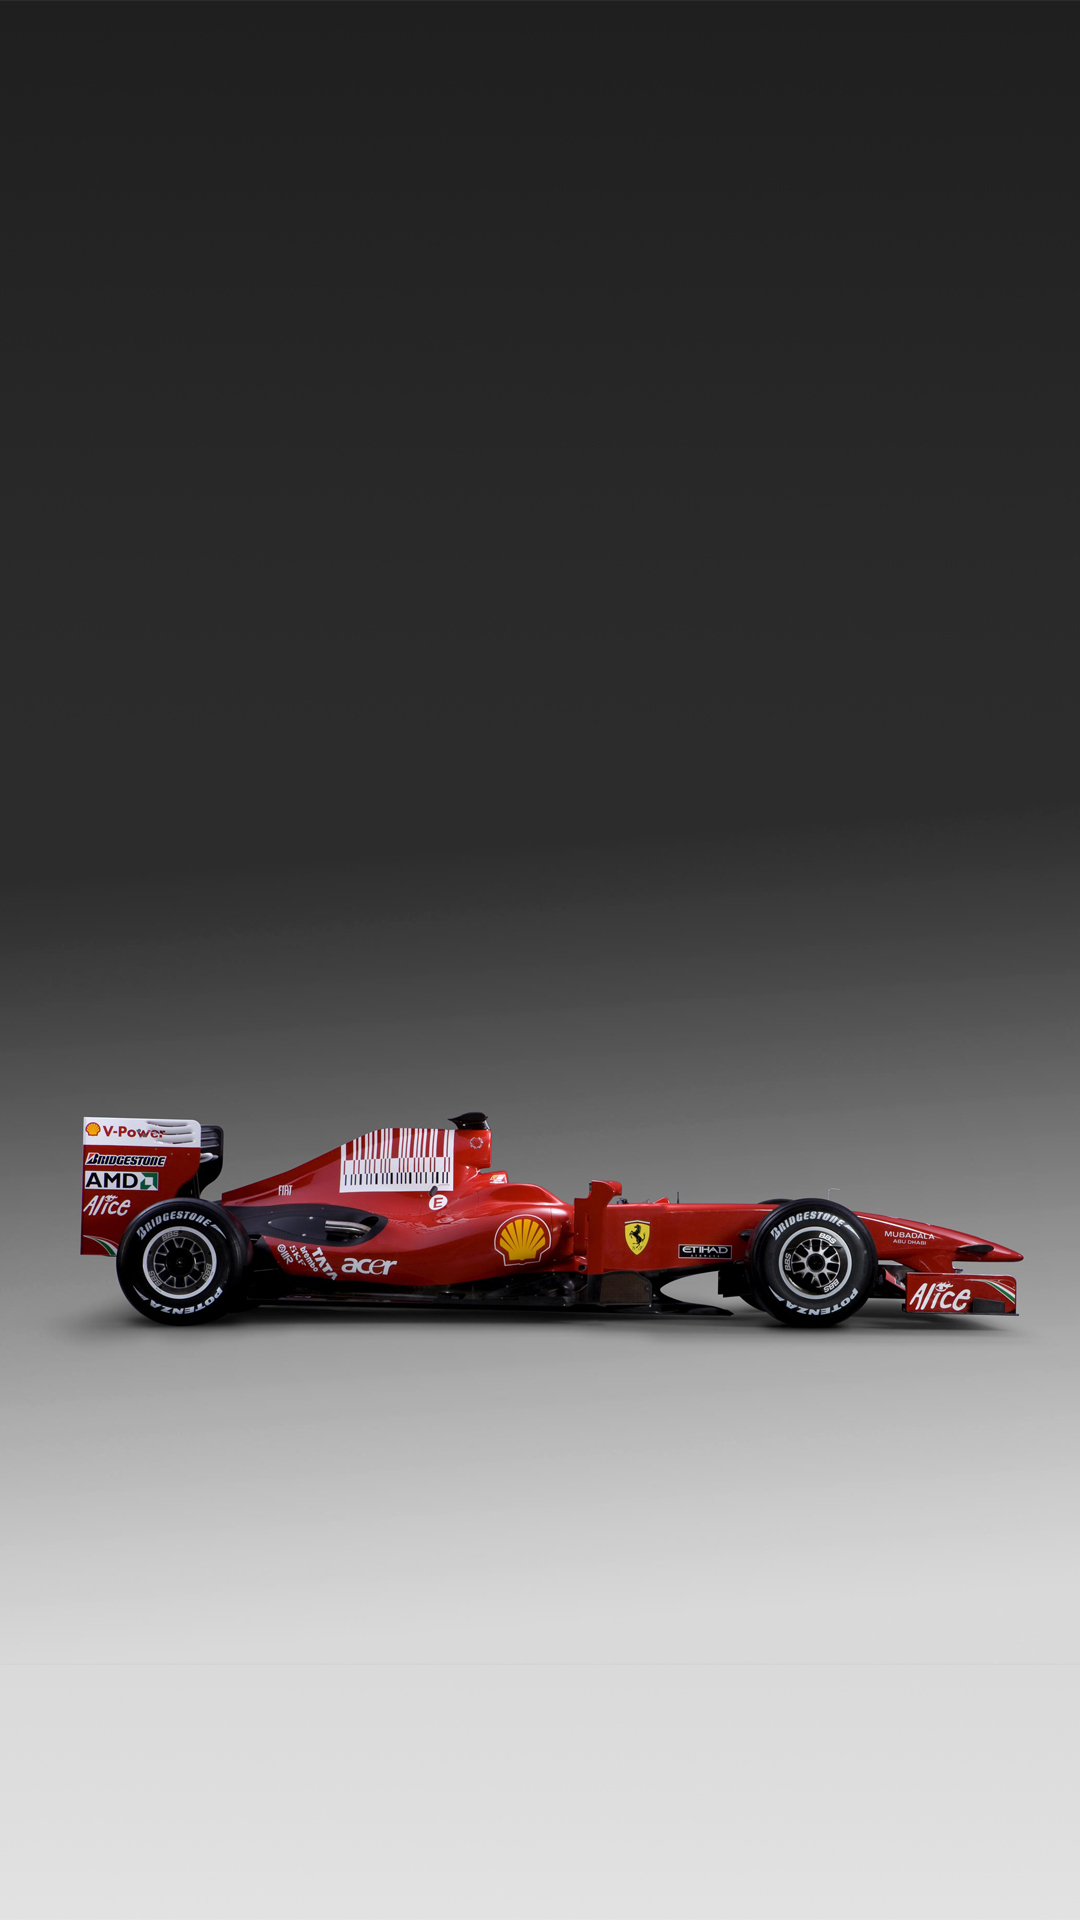 Ferrari F60 F1 car HTC one wallpaper